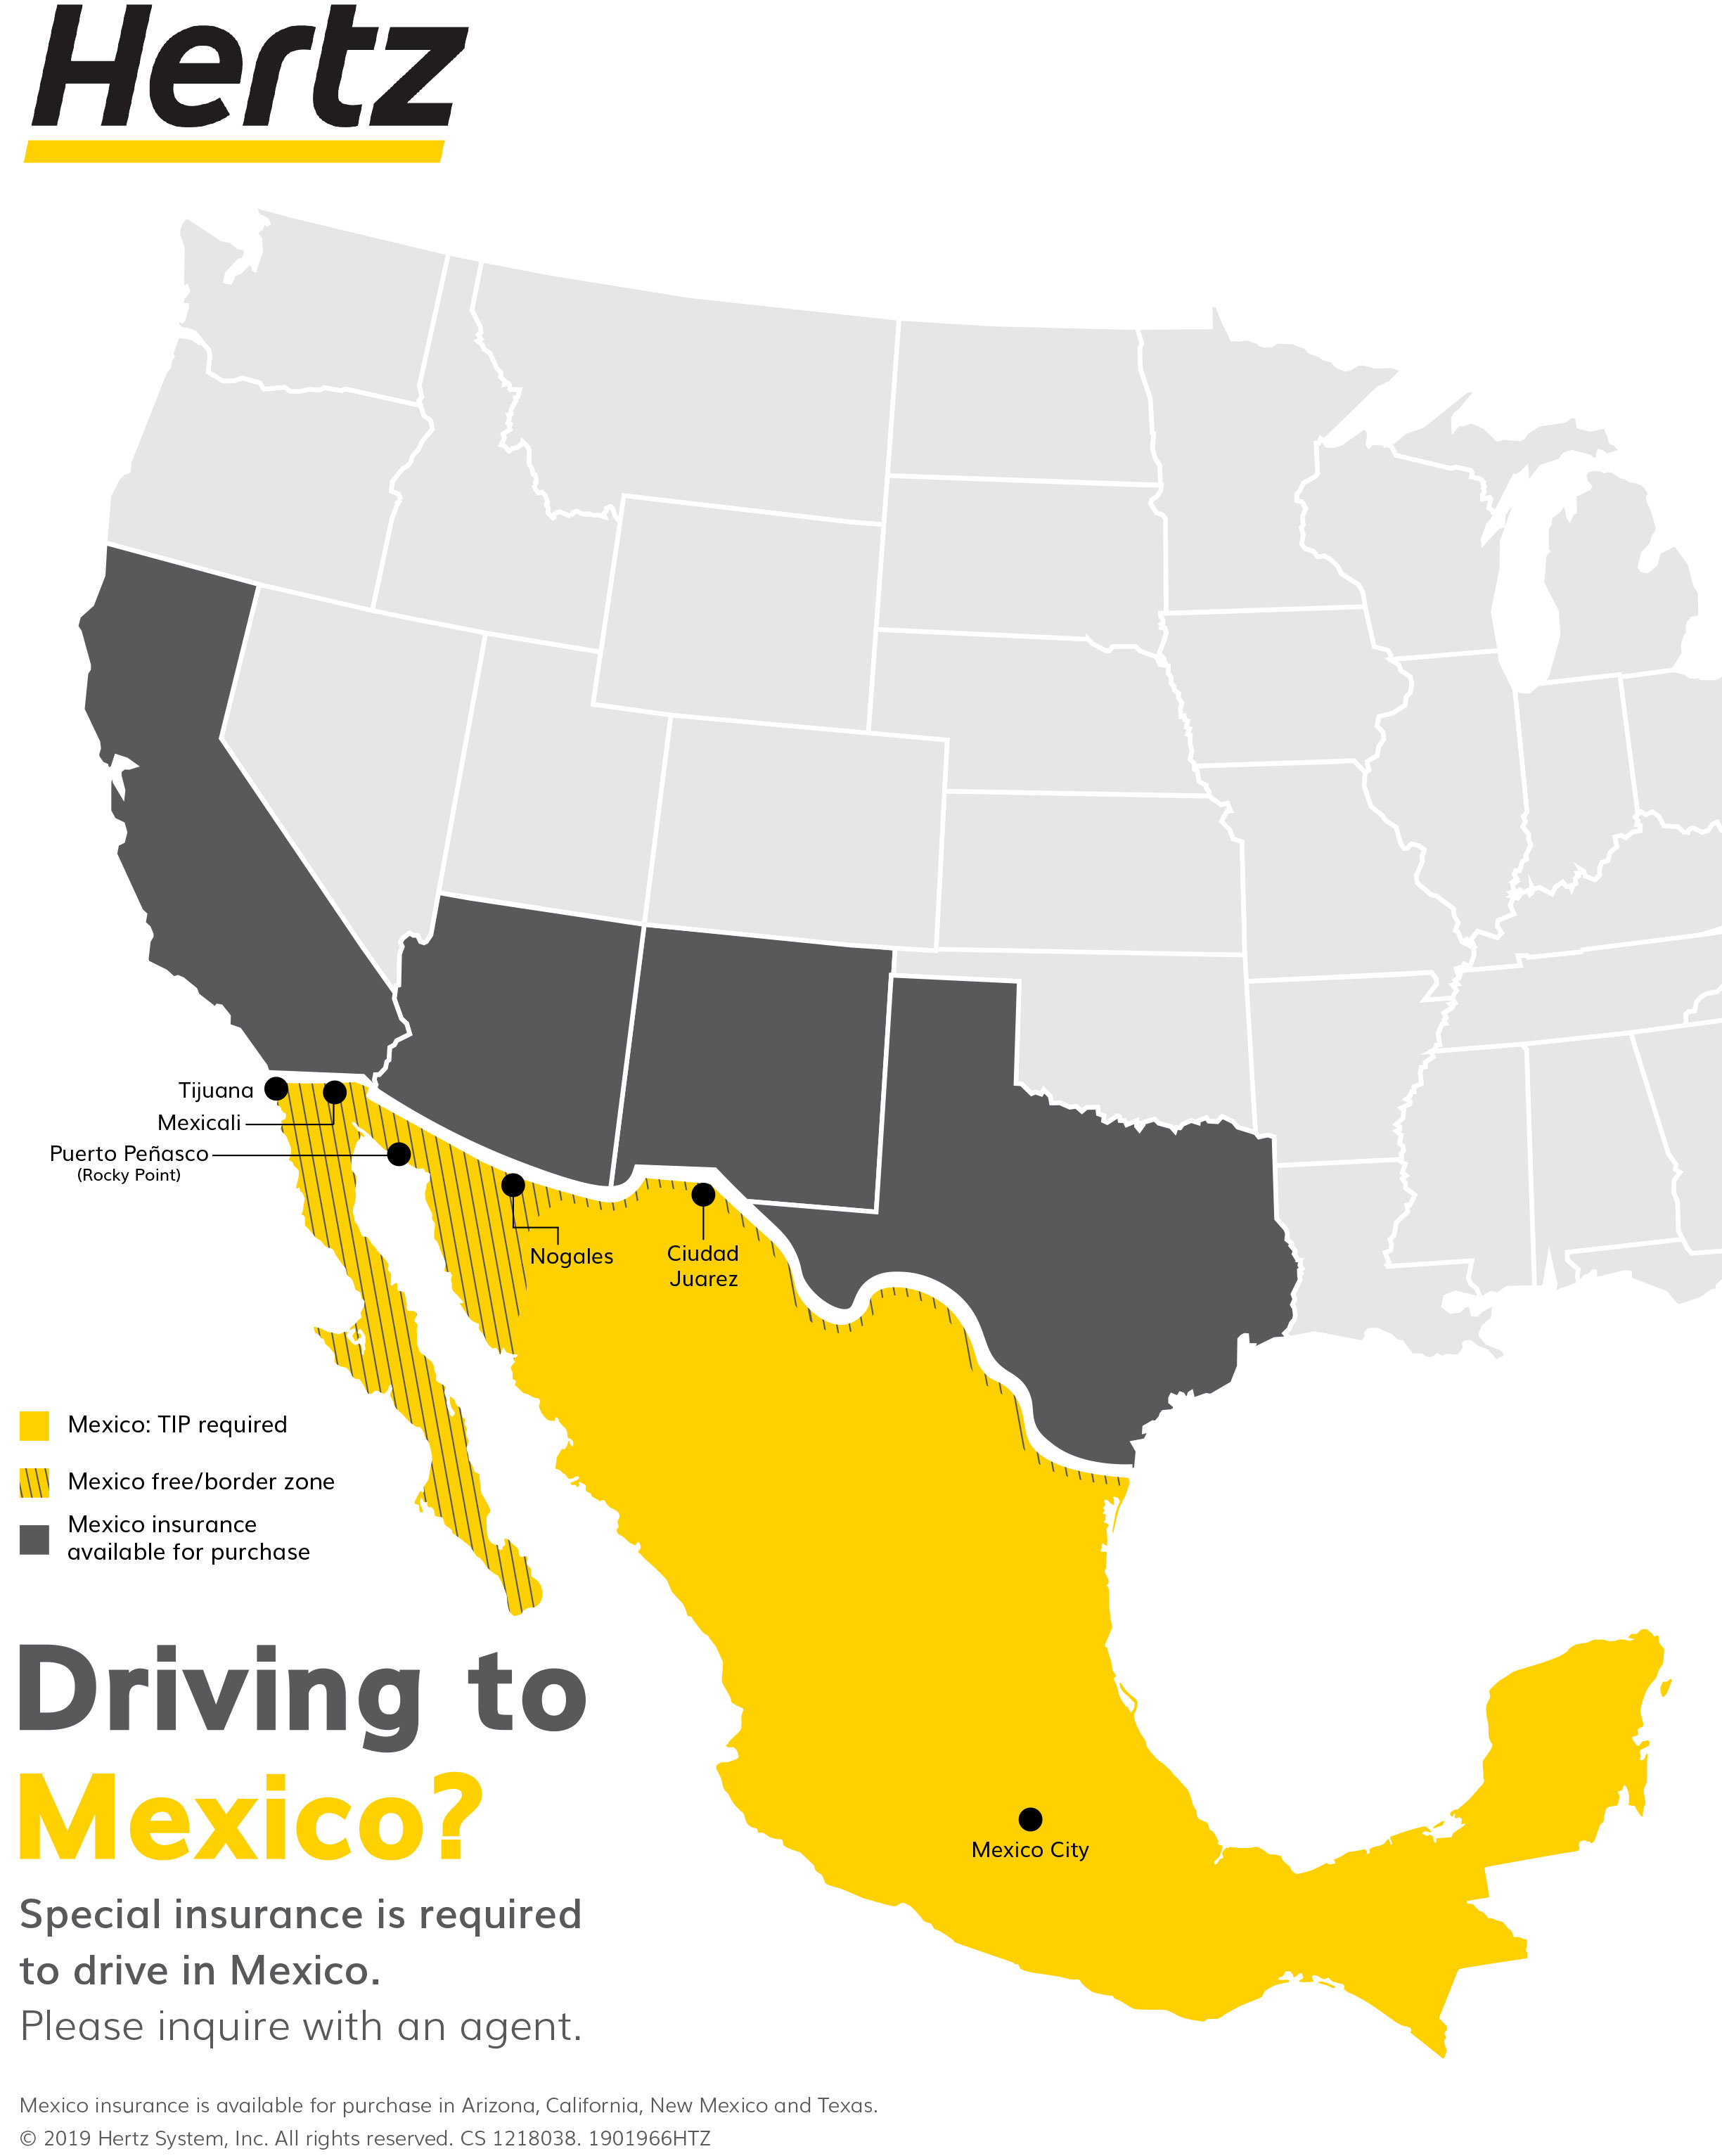 A yellow colored map of Mexico that highlights popular city destinations on the boarder of the United States.